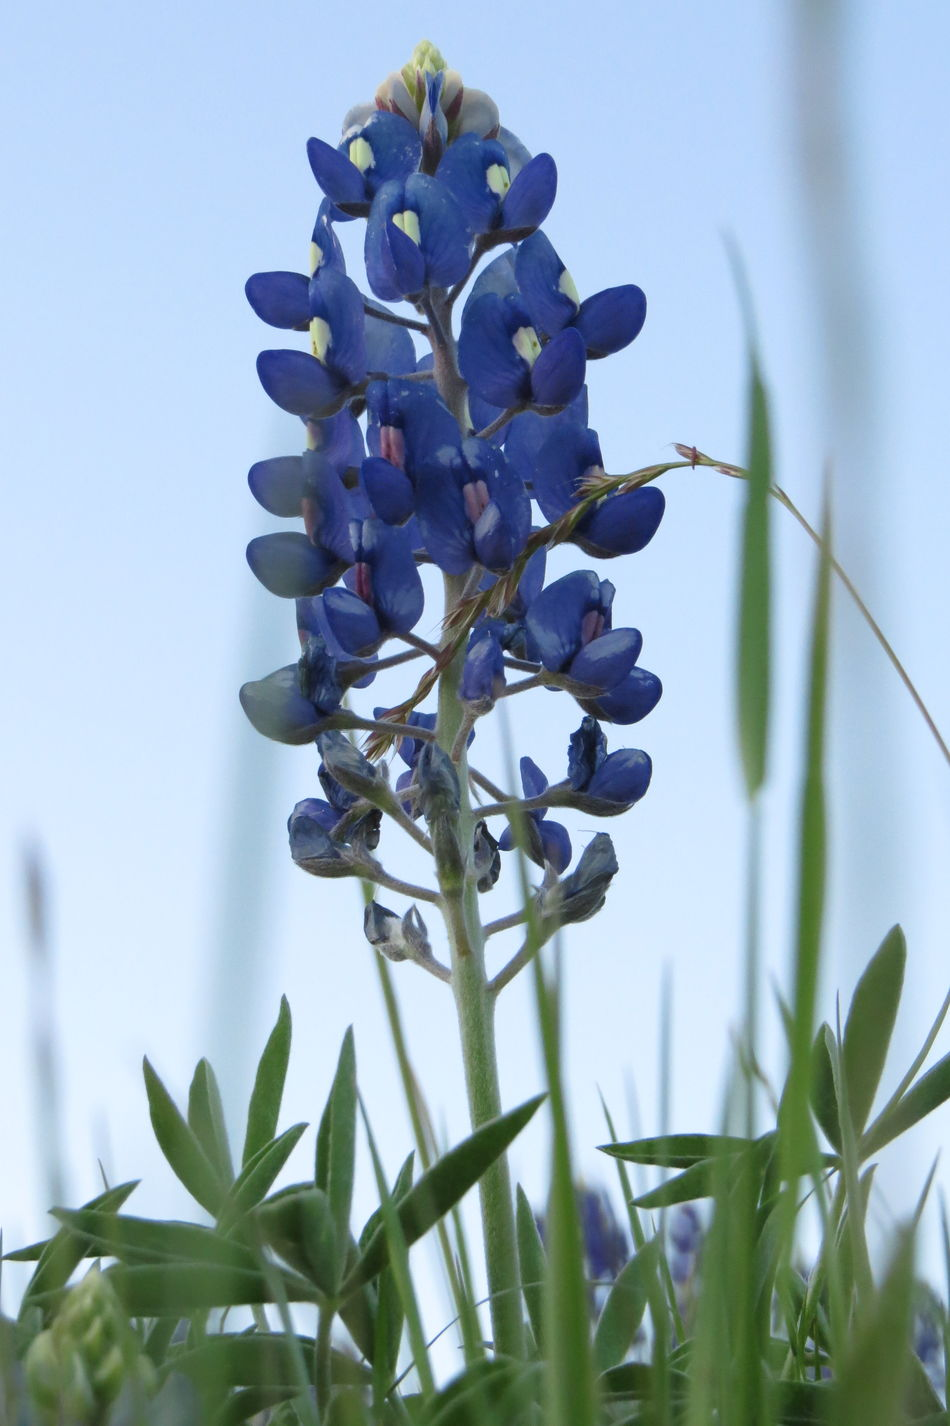 2016 Blue Blue Bonnets Close-up Don't Pick The Flowers Felony Focus On Foreground Freshness Growth Leaf Low Angle View Nature Plant Purple Spring Time State Flower Stem Texas Wild Wildflower